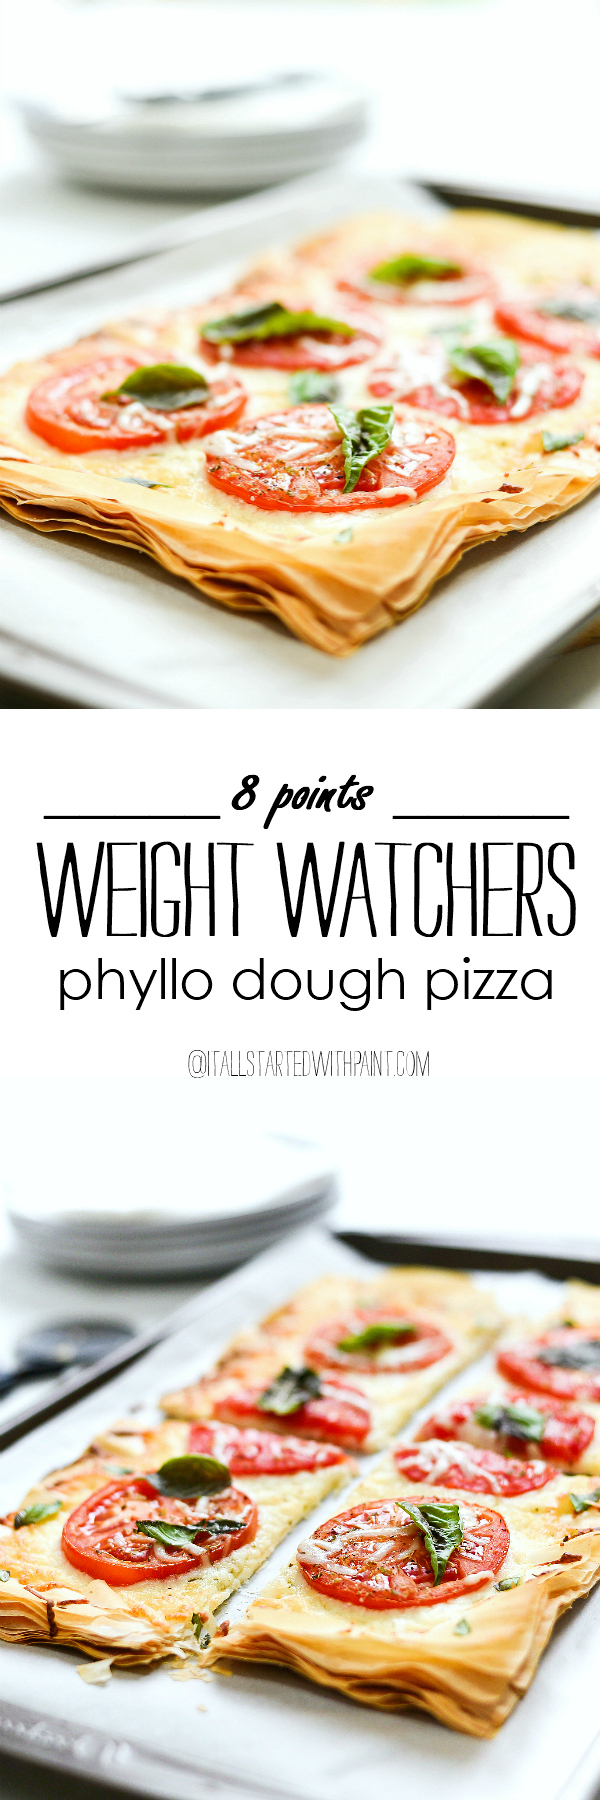 Weight Watchers Pizza Recipe - Phyllo Dough Pizza - Margherita Pizza Recipe